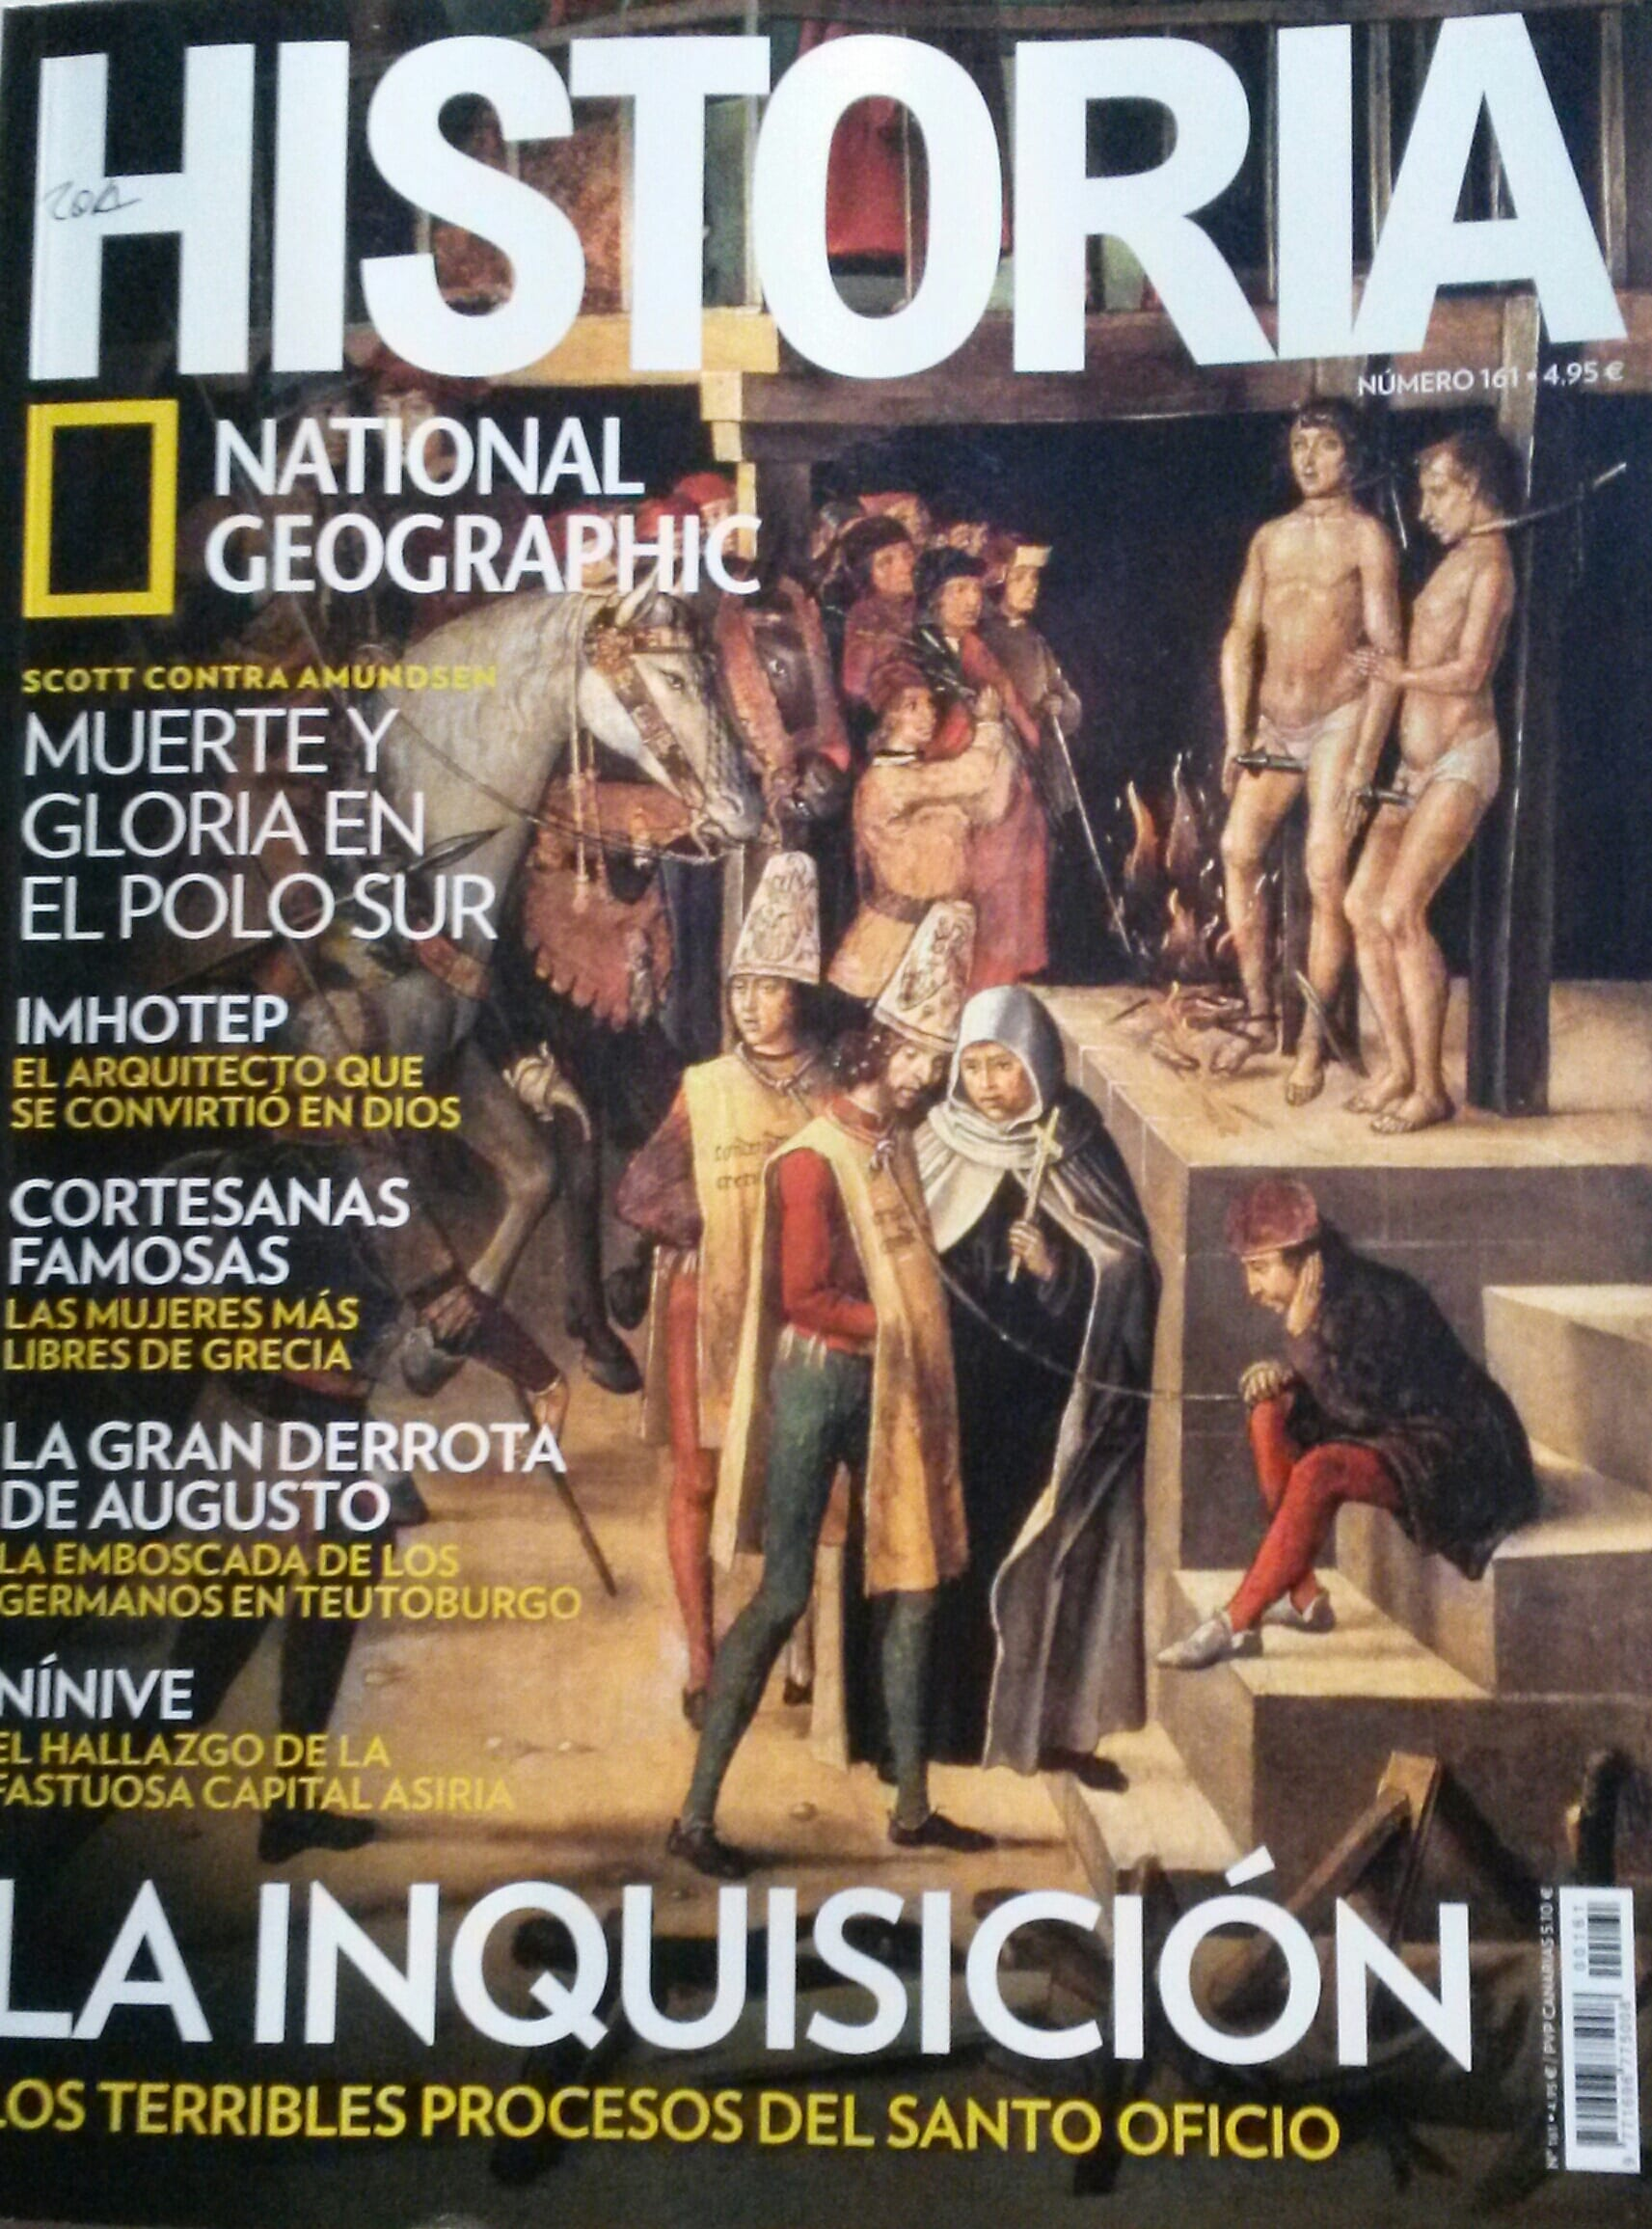 sites de engate revista maria